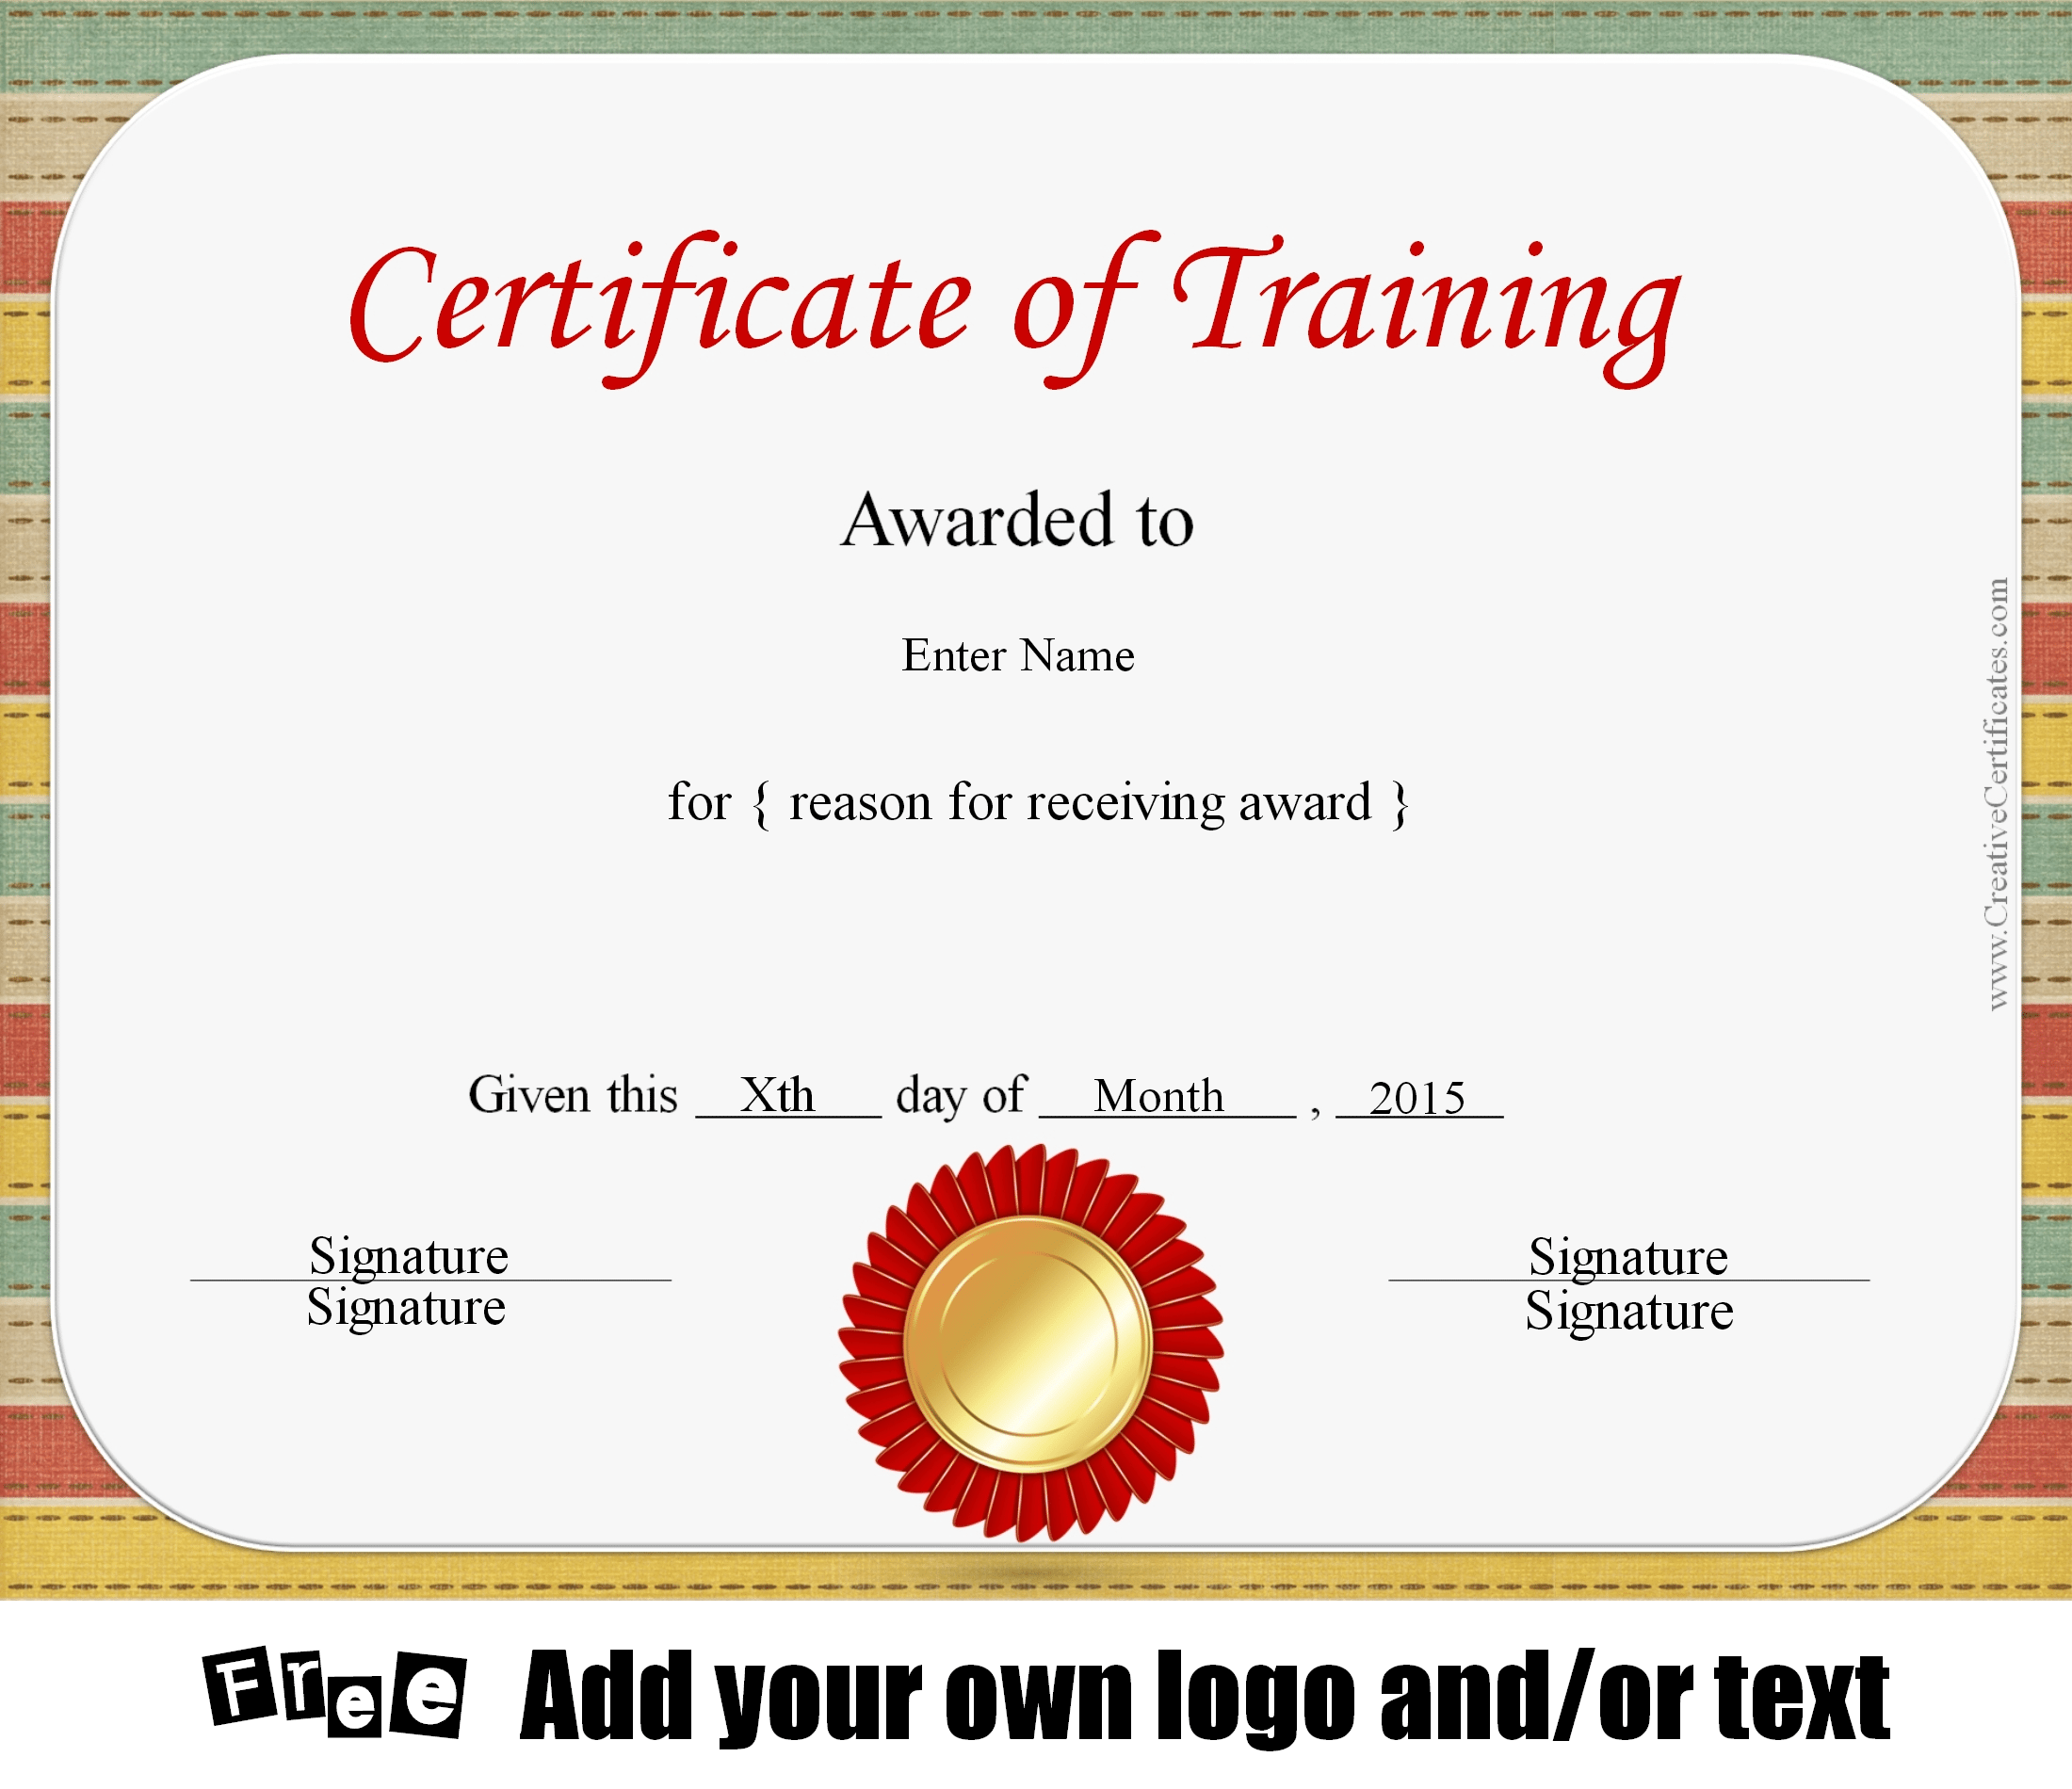 customizable certificate template - free certificate of training template customizable